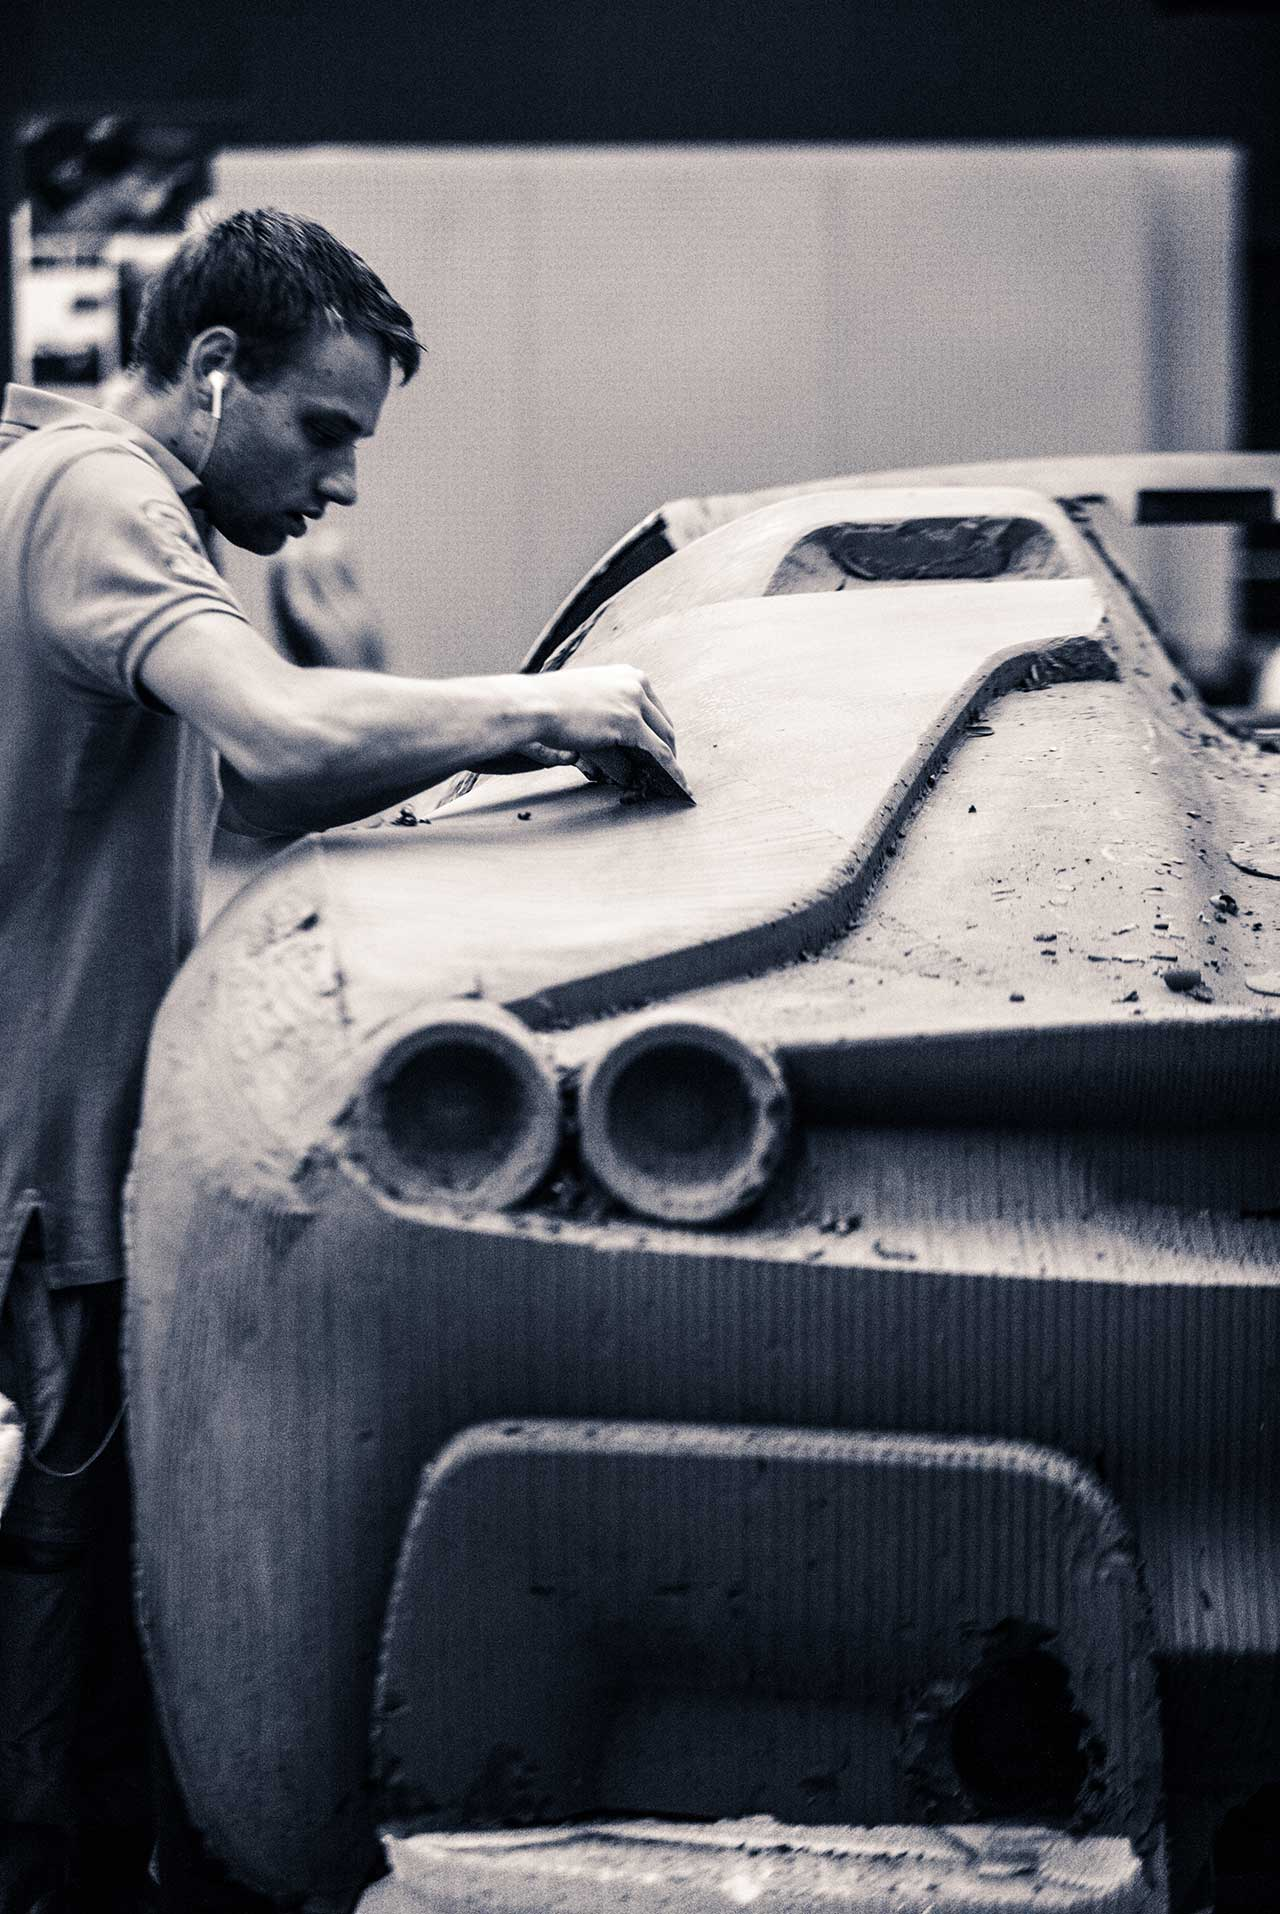 Crafting of clay design model of Ferrari J50. Photo courtesy of Ferrari.